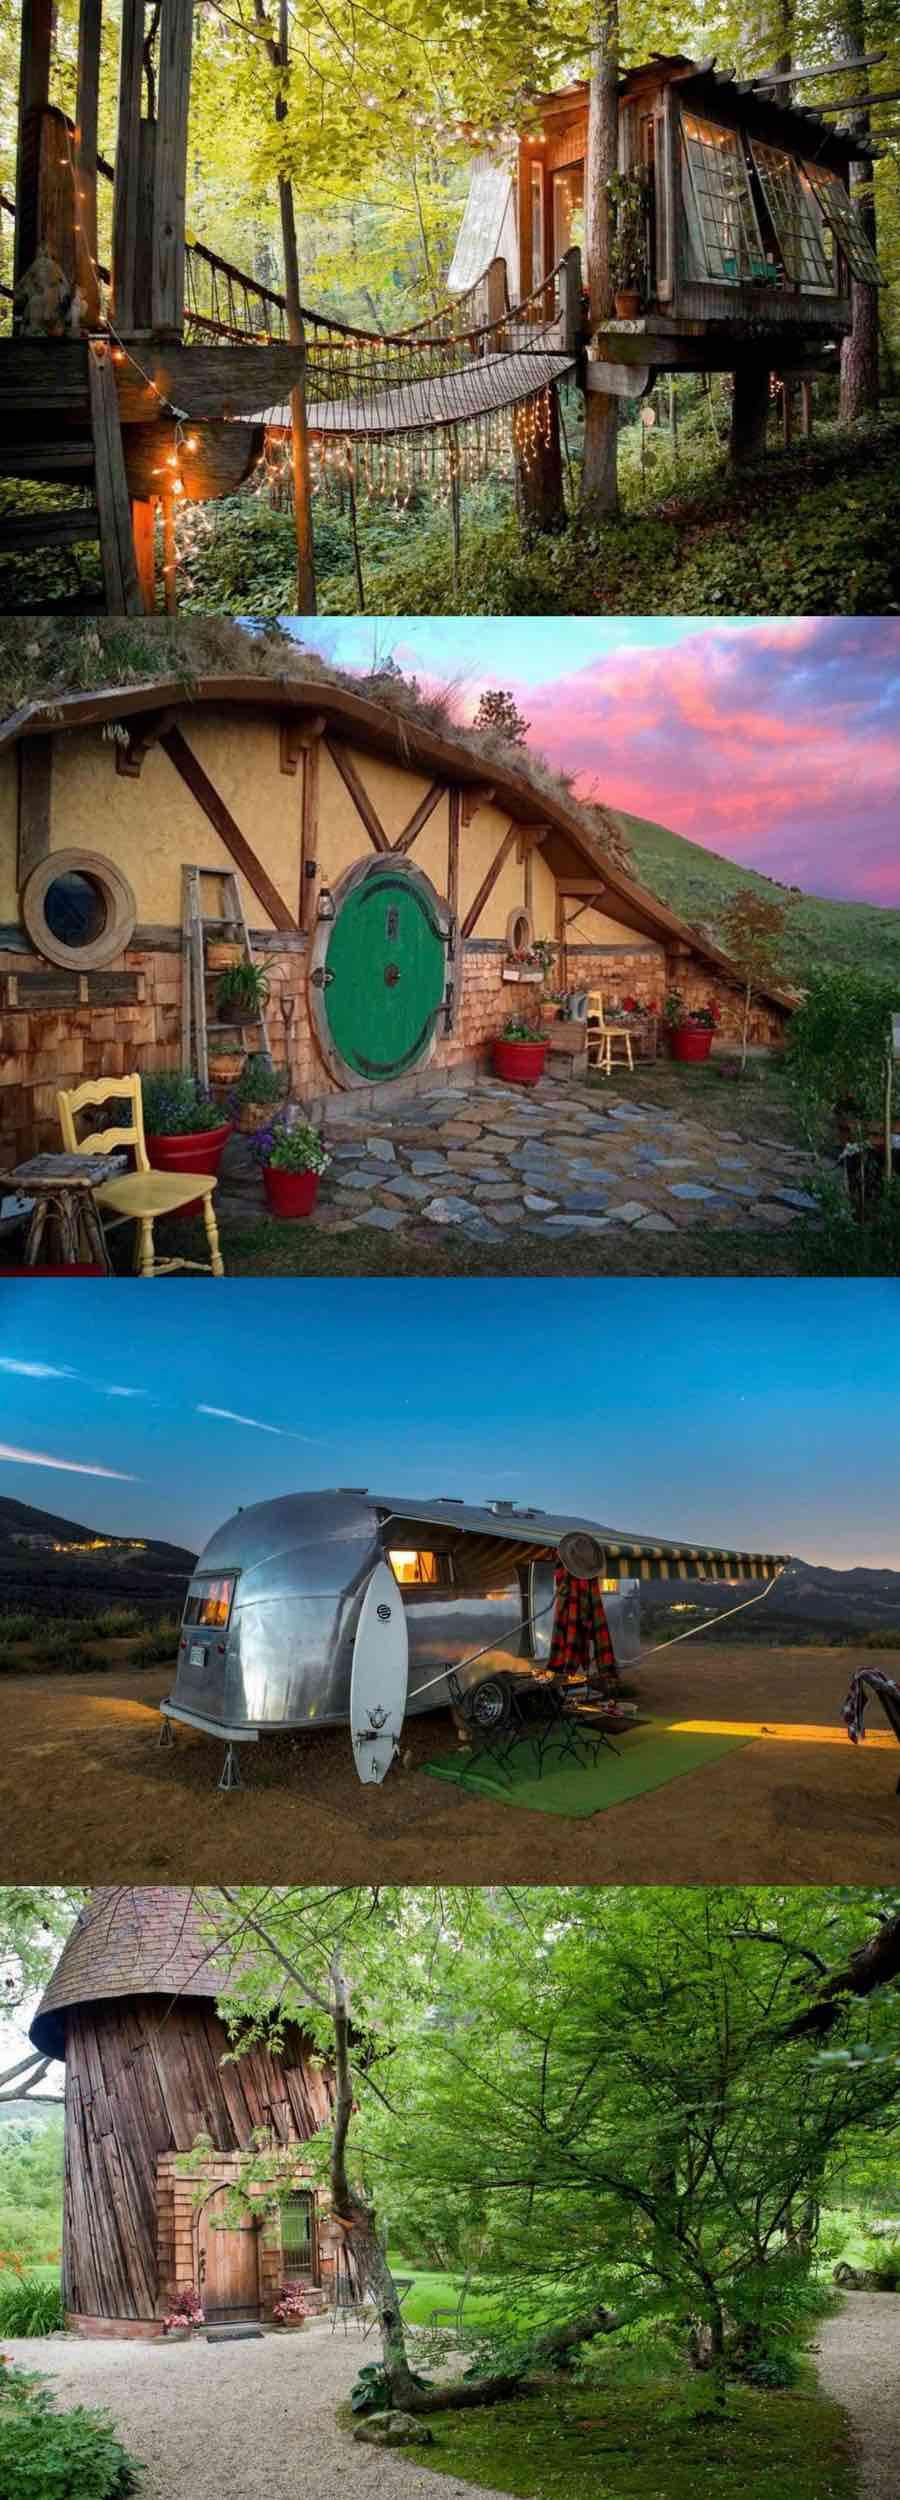 Unique Airbnb in the USA to stay at | unique airbnb ideas for a road trip